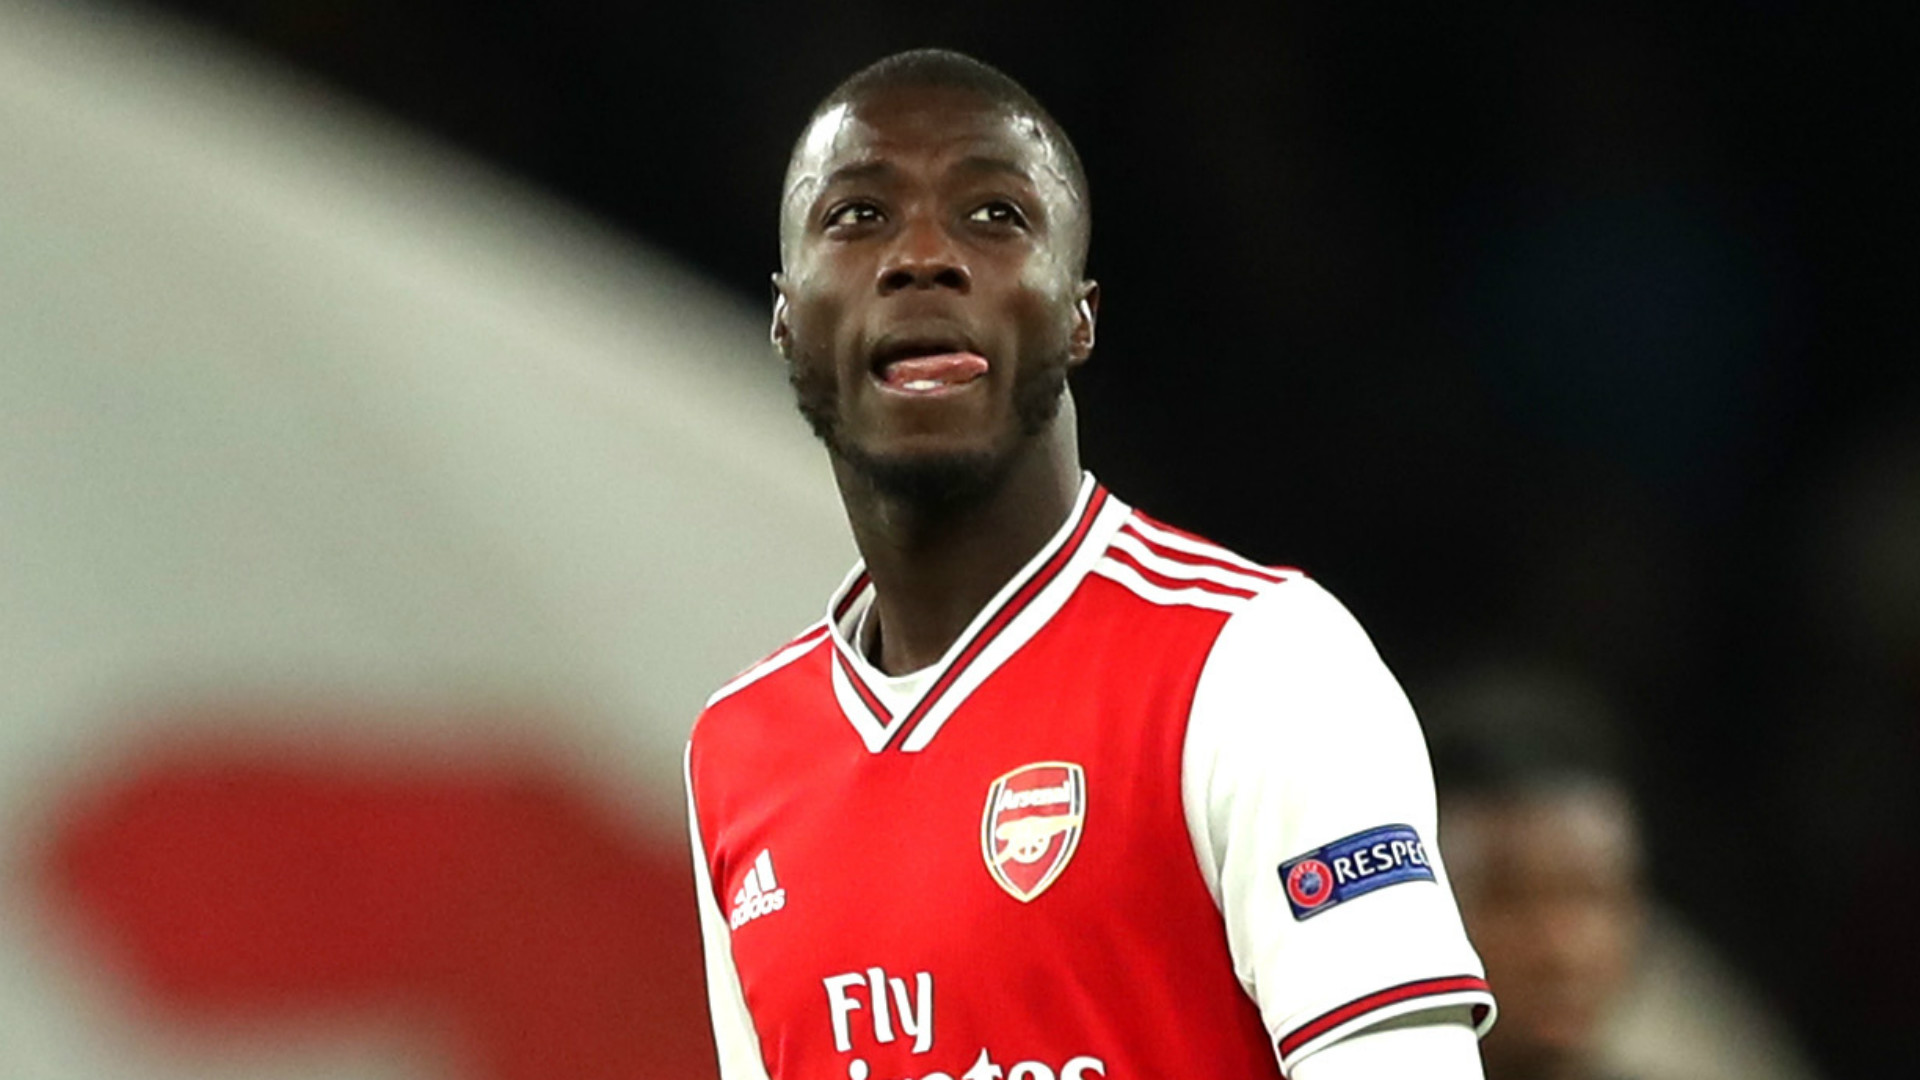 'Pepe is a flop at the moment, but can get better next year under Arteta' - Arsenal's record signing backed to come good